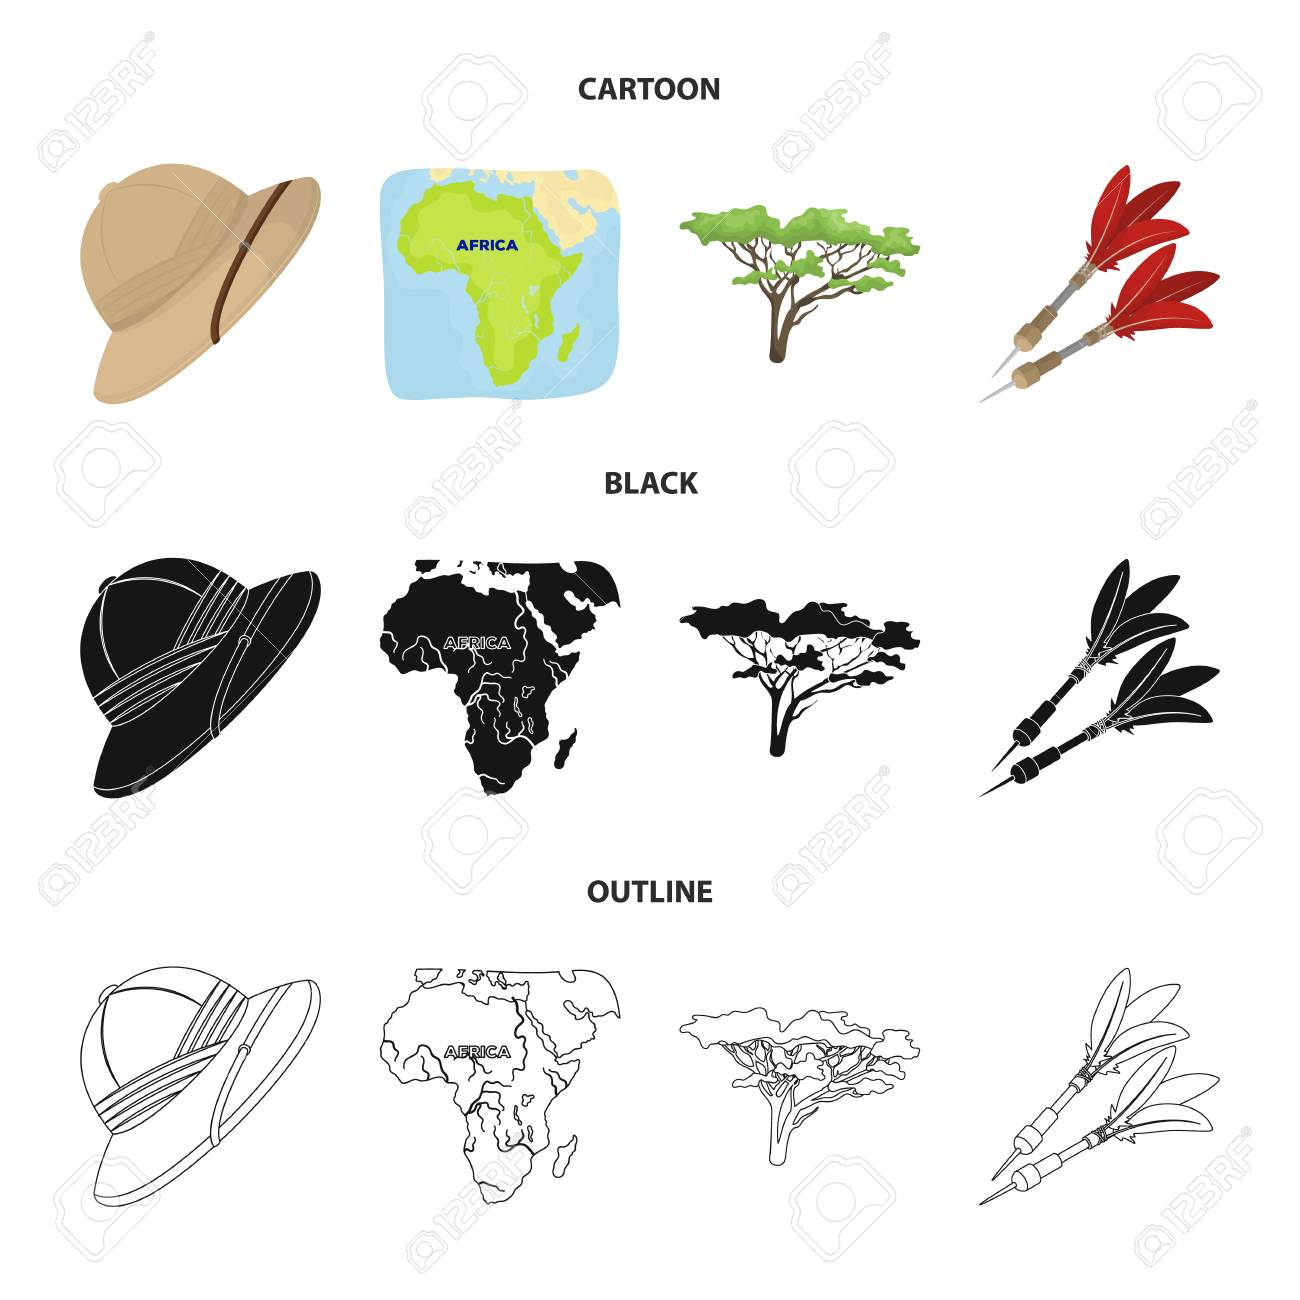 Hat Darts Tree And Africa Map Icons In Cartoon Black And Outline Royalty Free Cliparts Vectors And Stock Illustration Image 100331399 596,269 likes · 2,376 talking about this. 123rf com